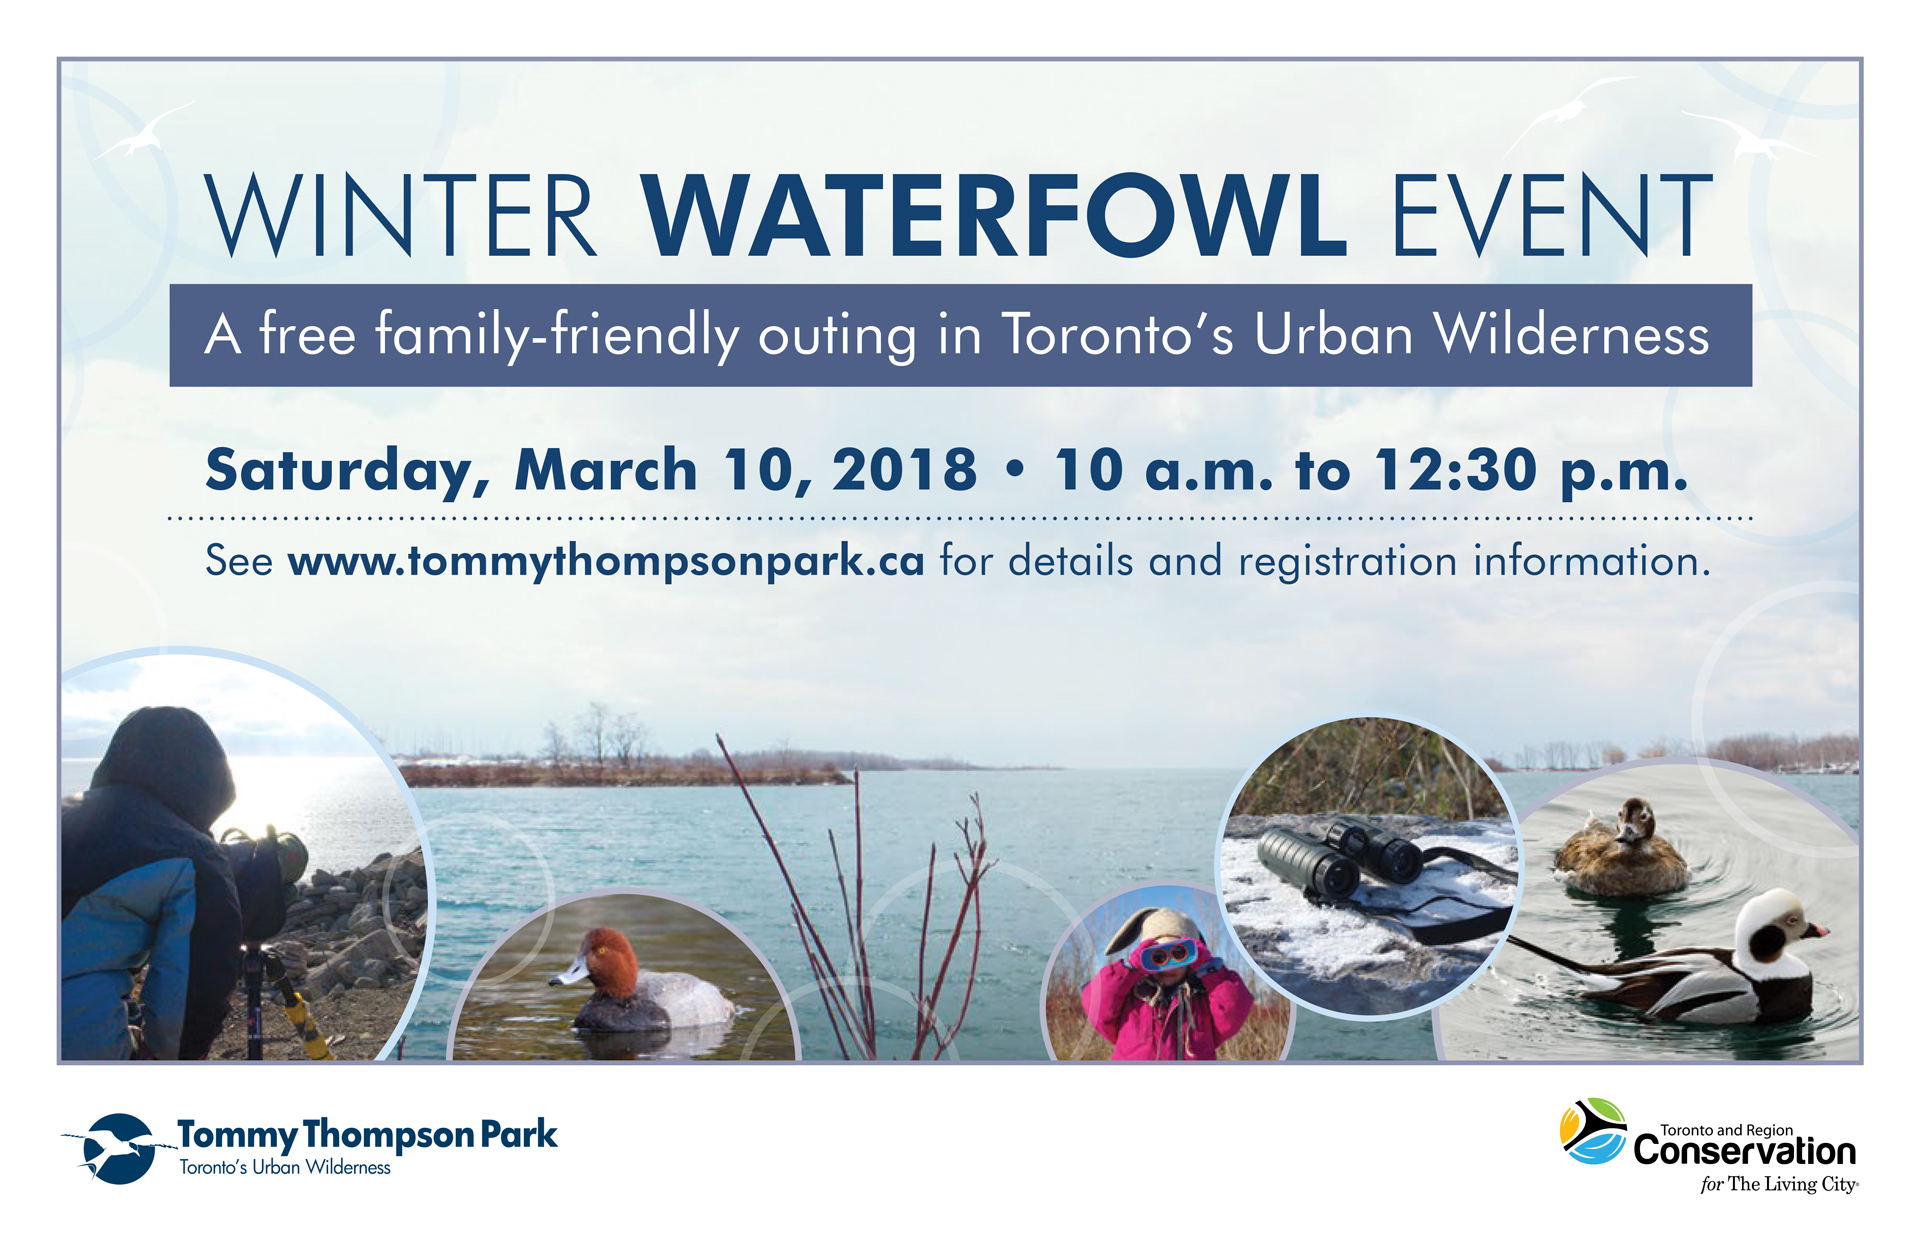 Winter Waterfowl Event